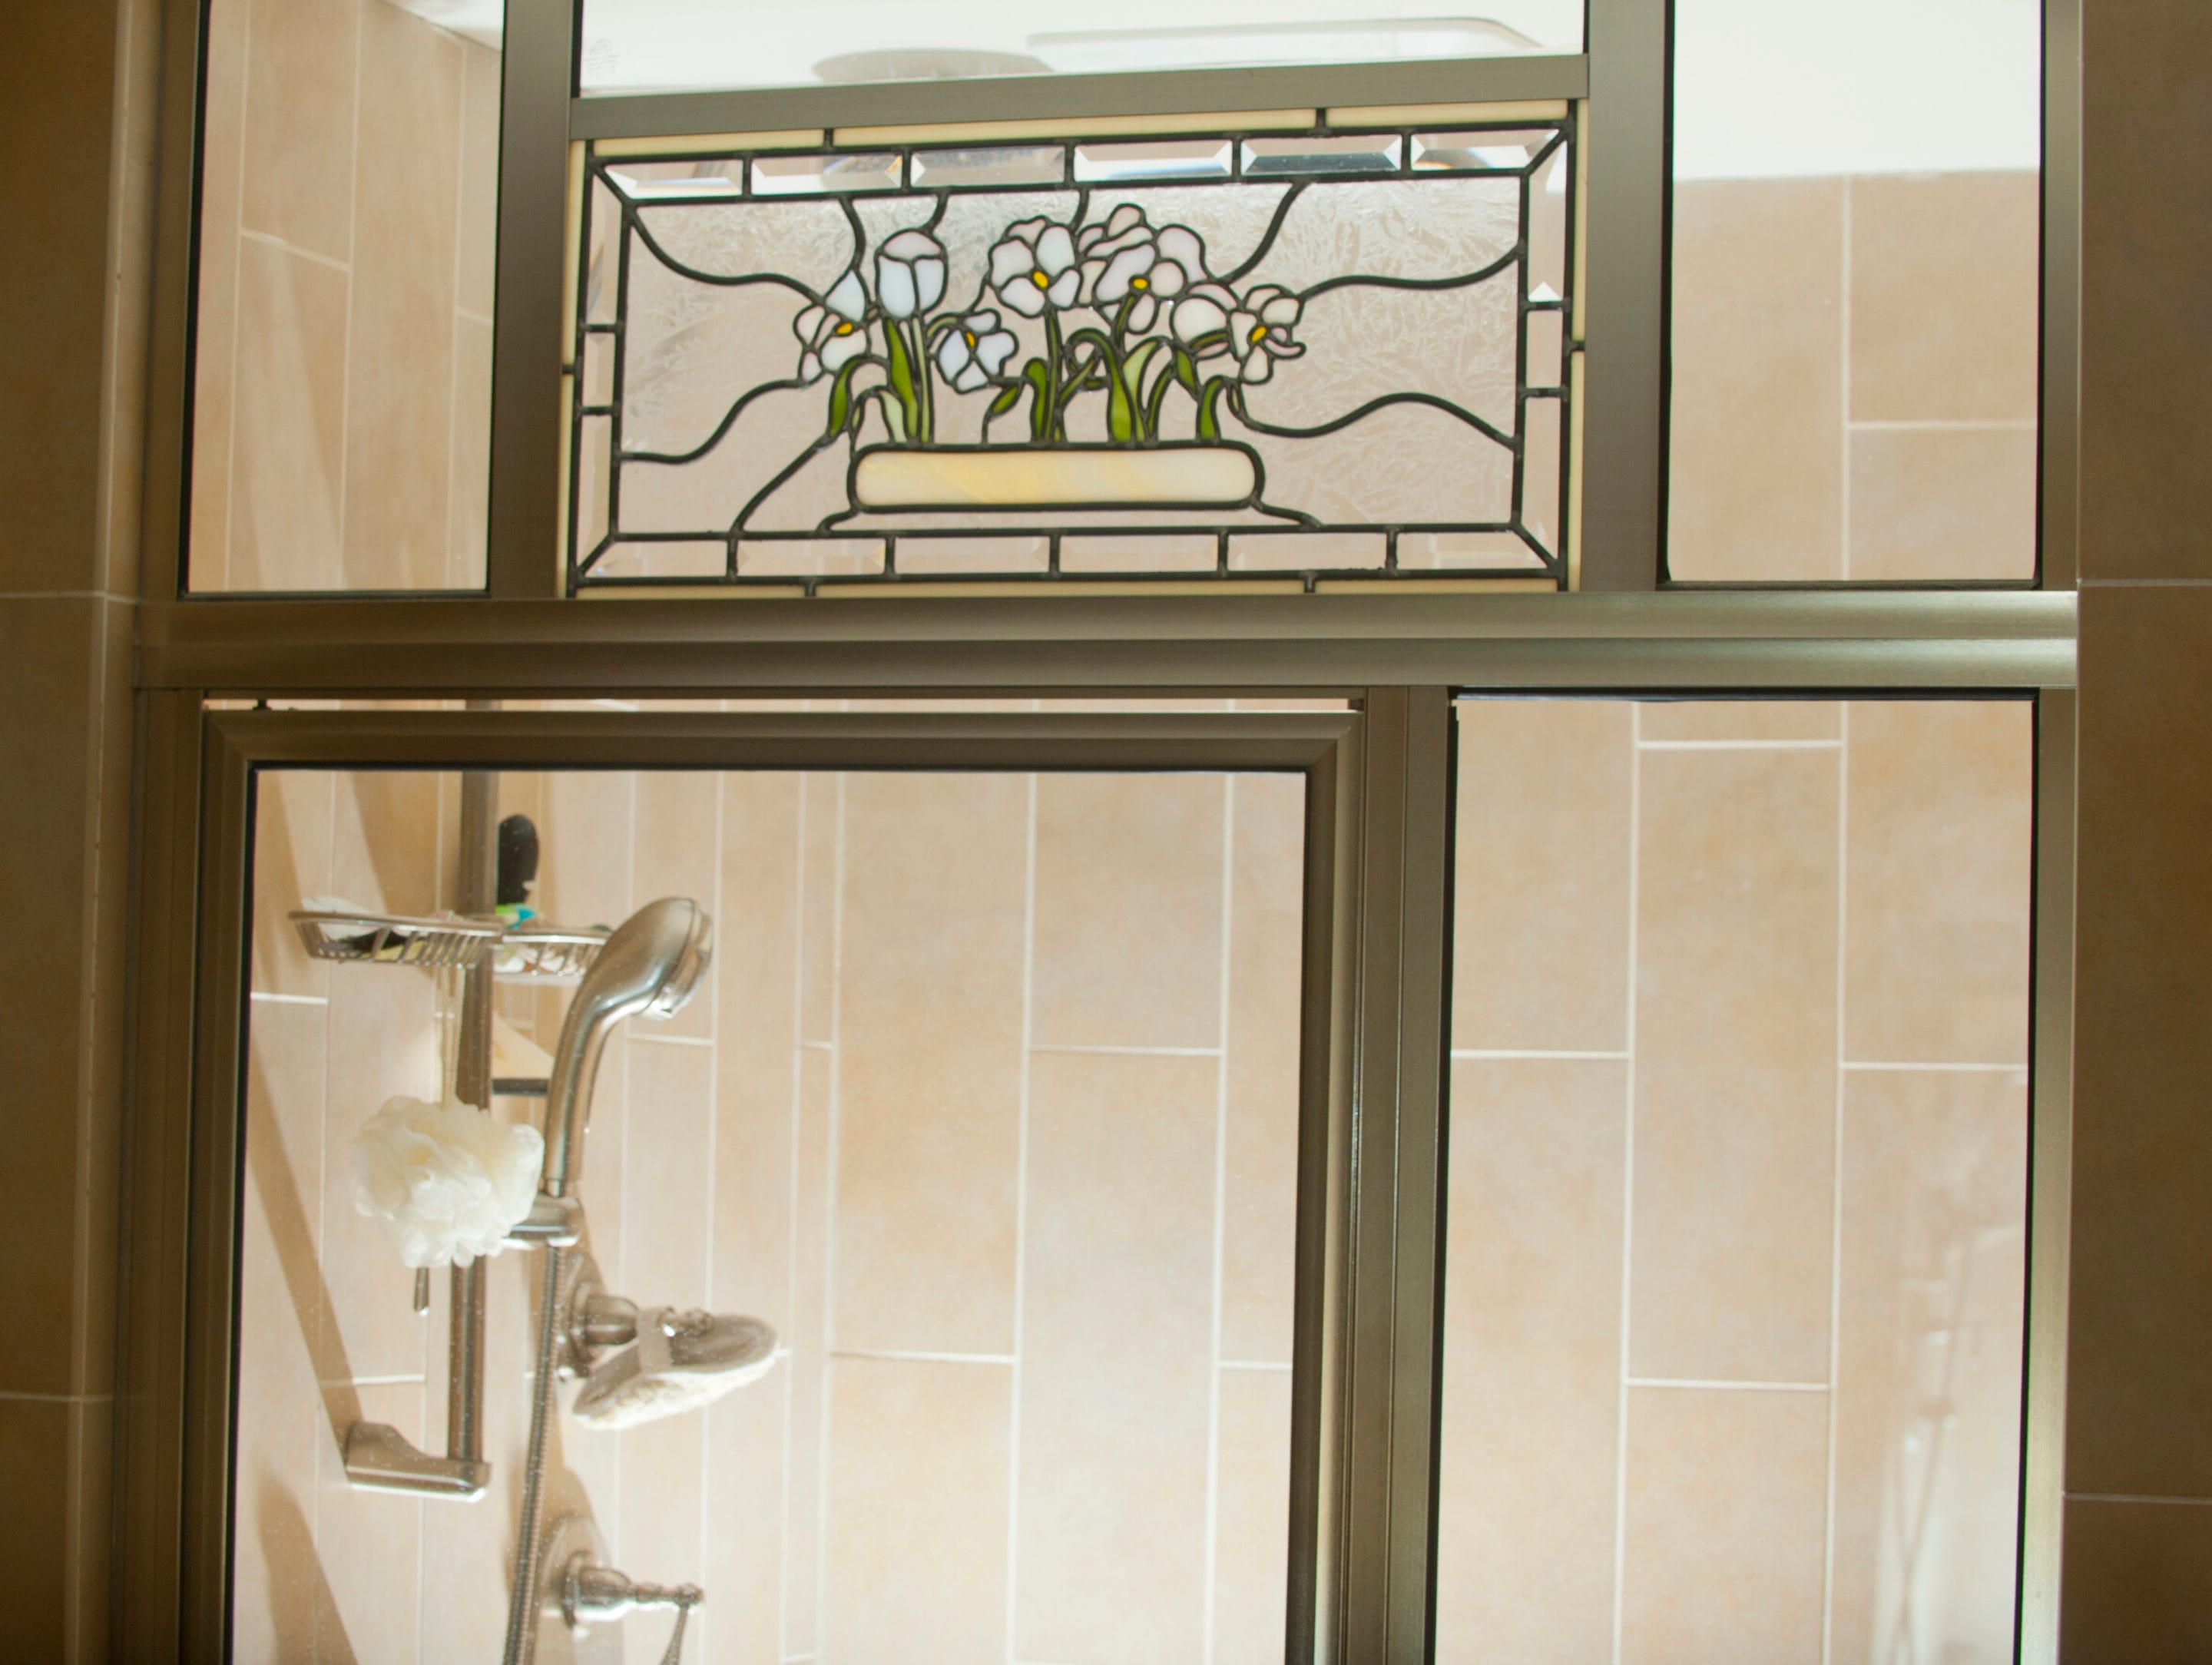 The Deeb's master bathroom is decorated with this stained glass window made by Carol Deeb's cousin, Cheryl Sexton.